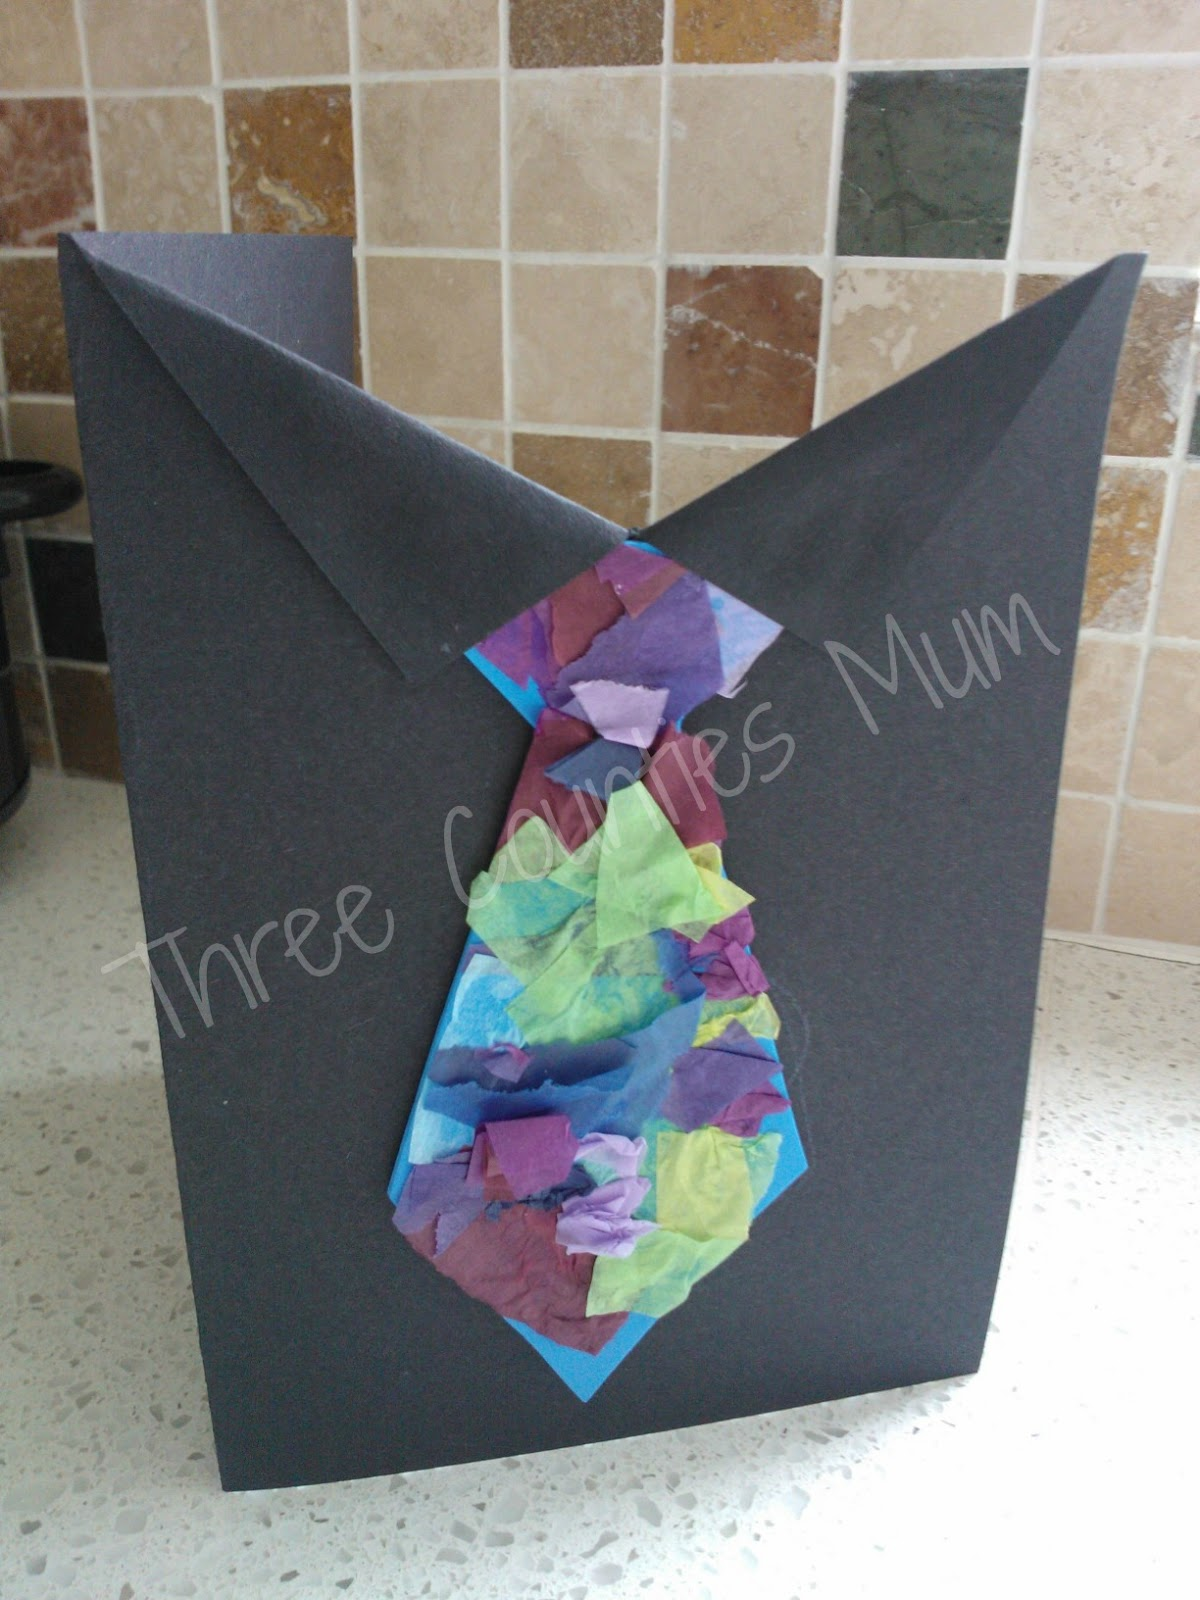 Shirt design card -  So I Dug Out Supplies To Make A Father S Day Card I Think This Shirt Tie Design Is So Cute And Something That Most Kids Can Associate With Daddy